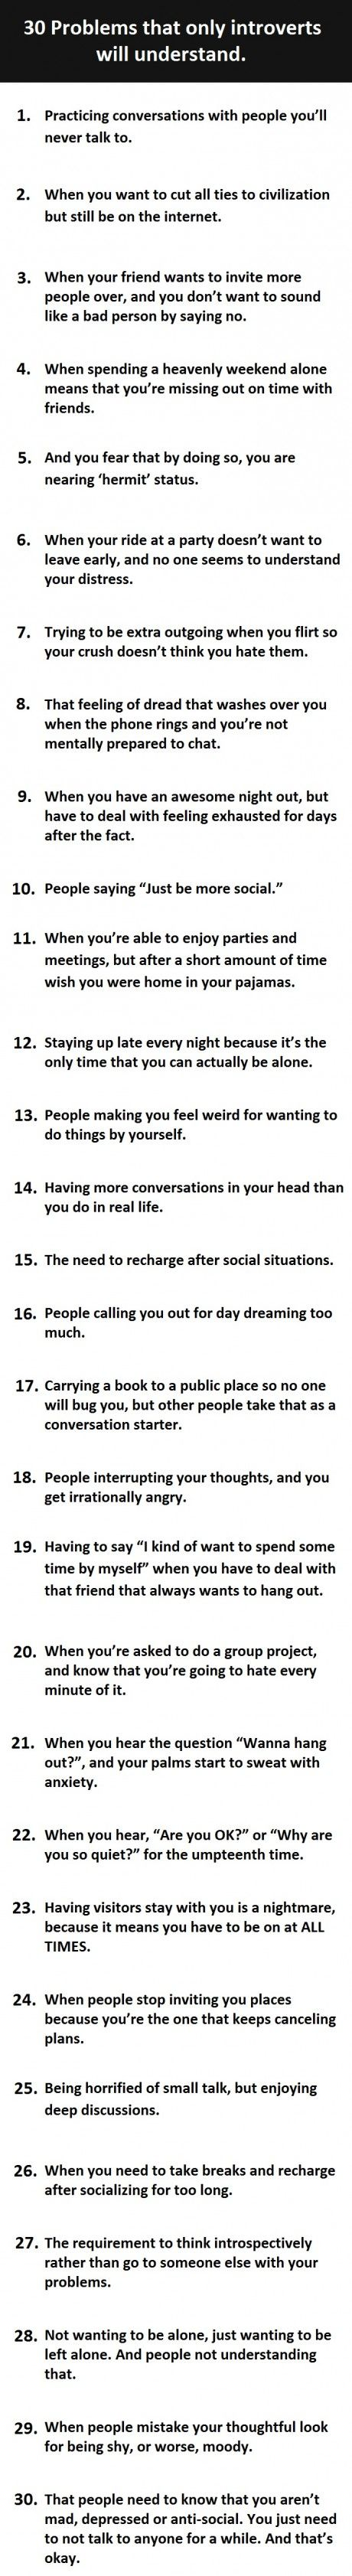 30 things that only introverted people will understand...